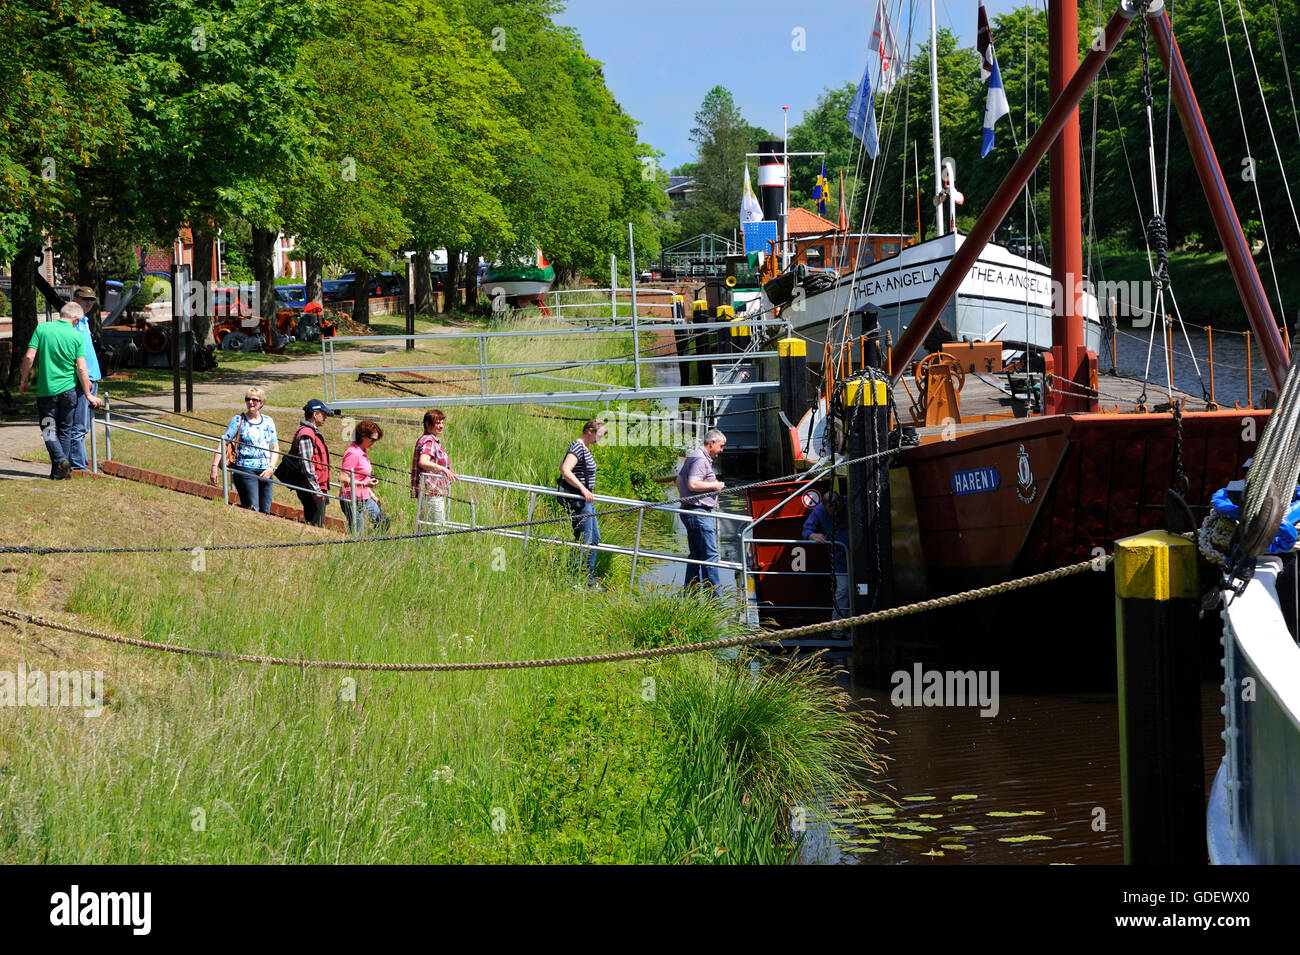 Open Air ship navigation museum, Haren, Lower Saxony, Germany - Stock Image